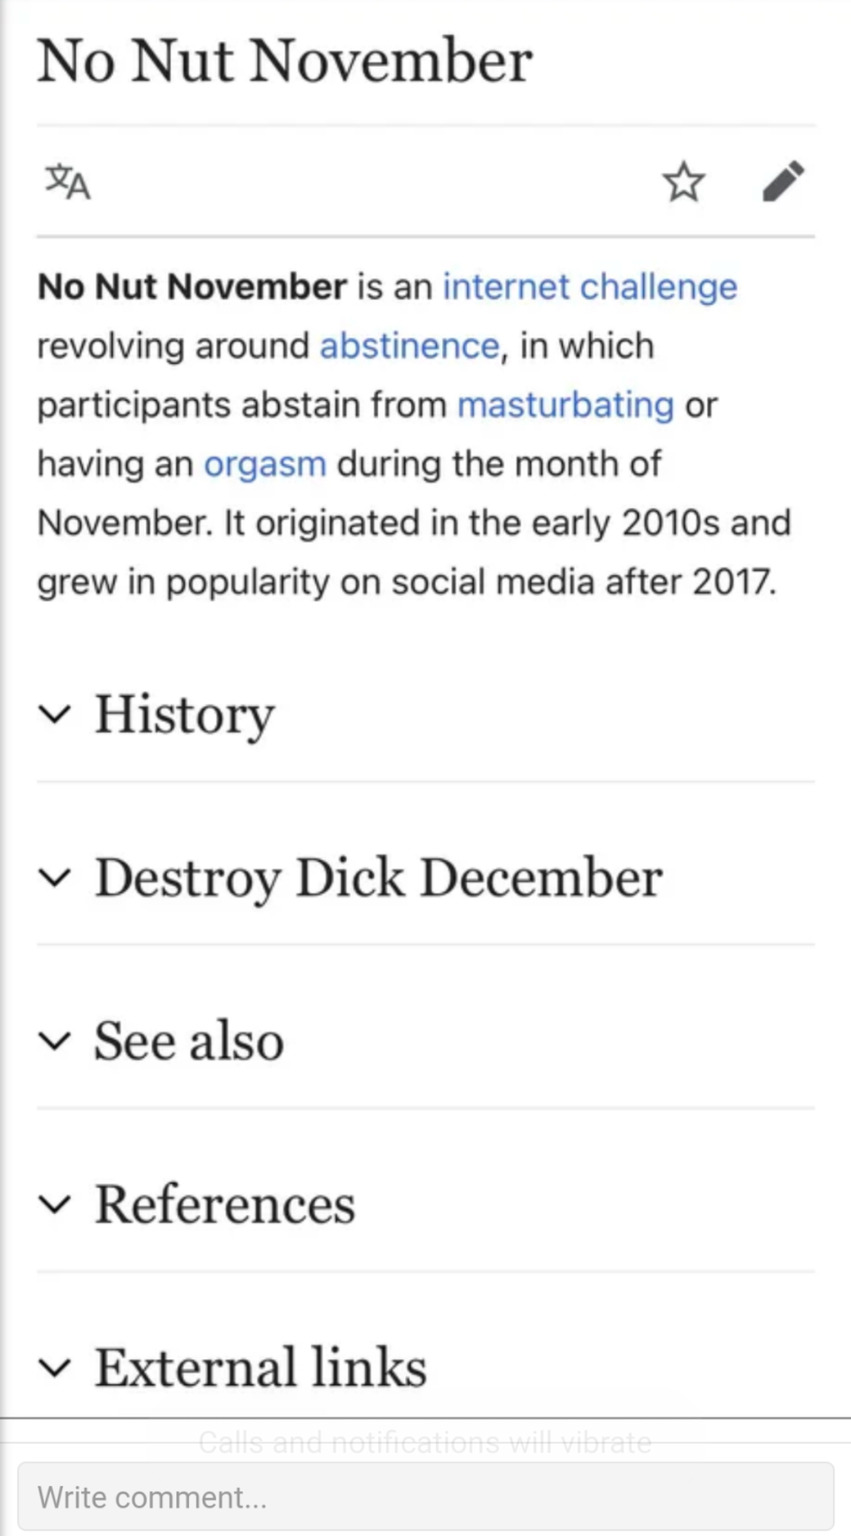 I will go with the destroy Dick December - meme